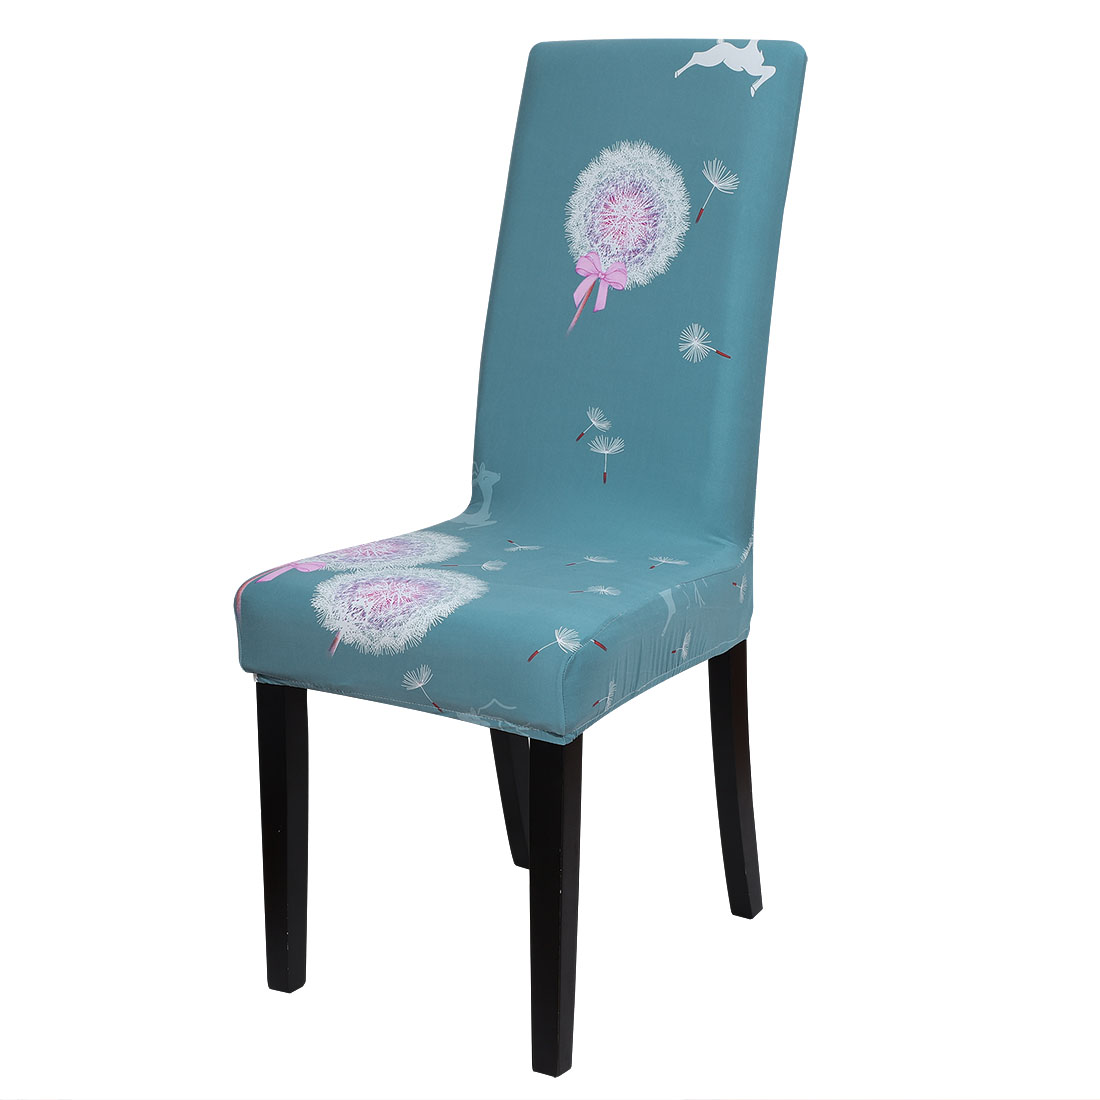 Floral Print Spandex Chair Covers Dining Room Seat ...